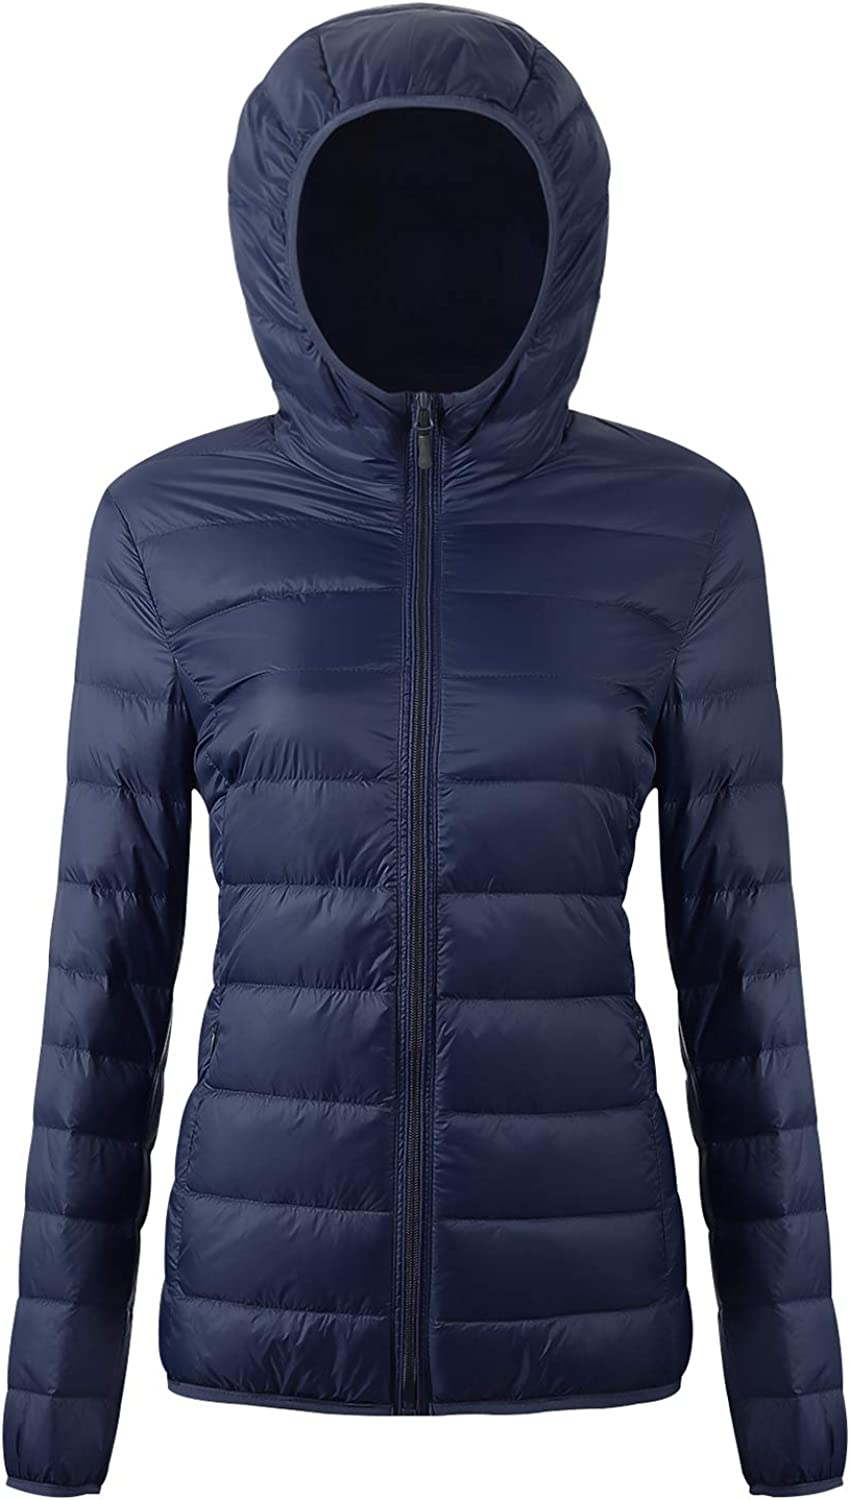 EQUICK Womens Puffer Packable Down Jacket Ultra Light Weight Short Coat with Travel Bag